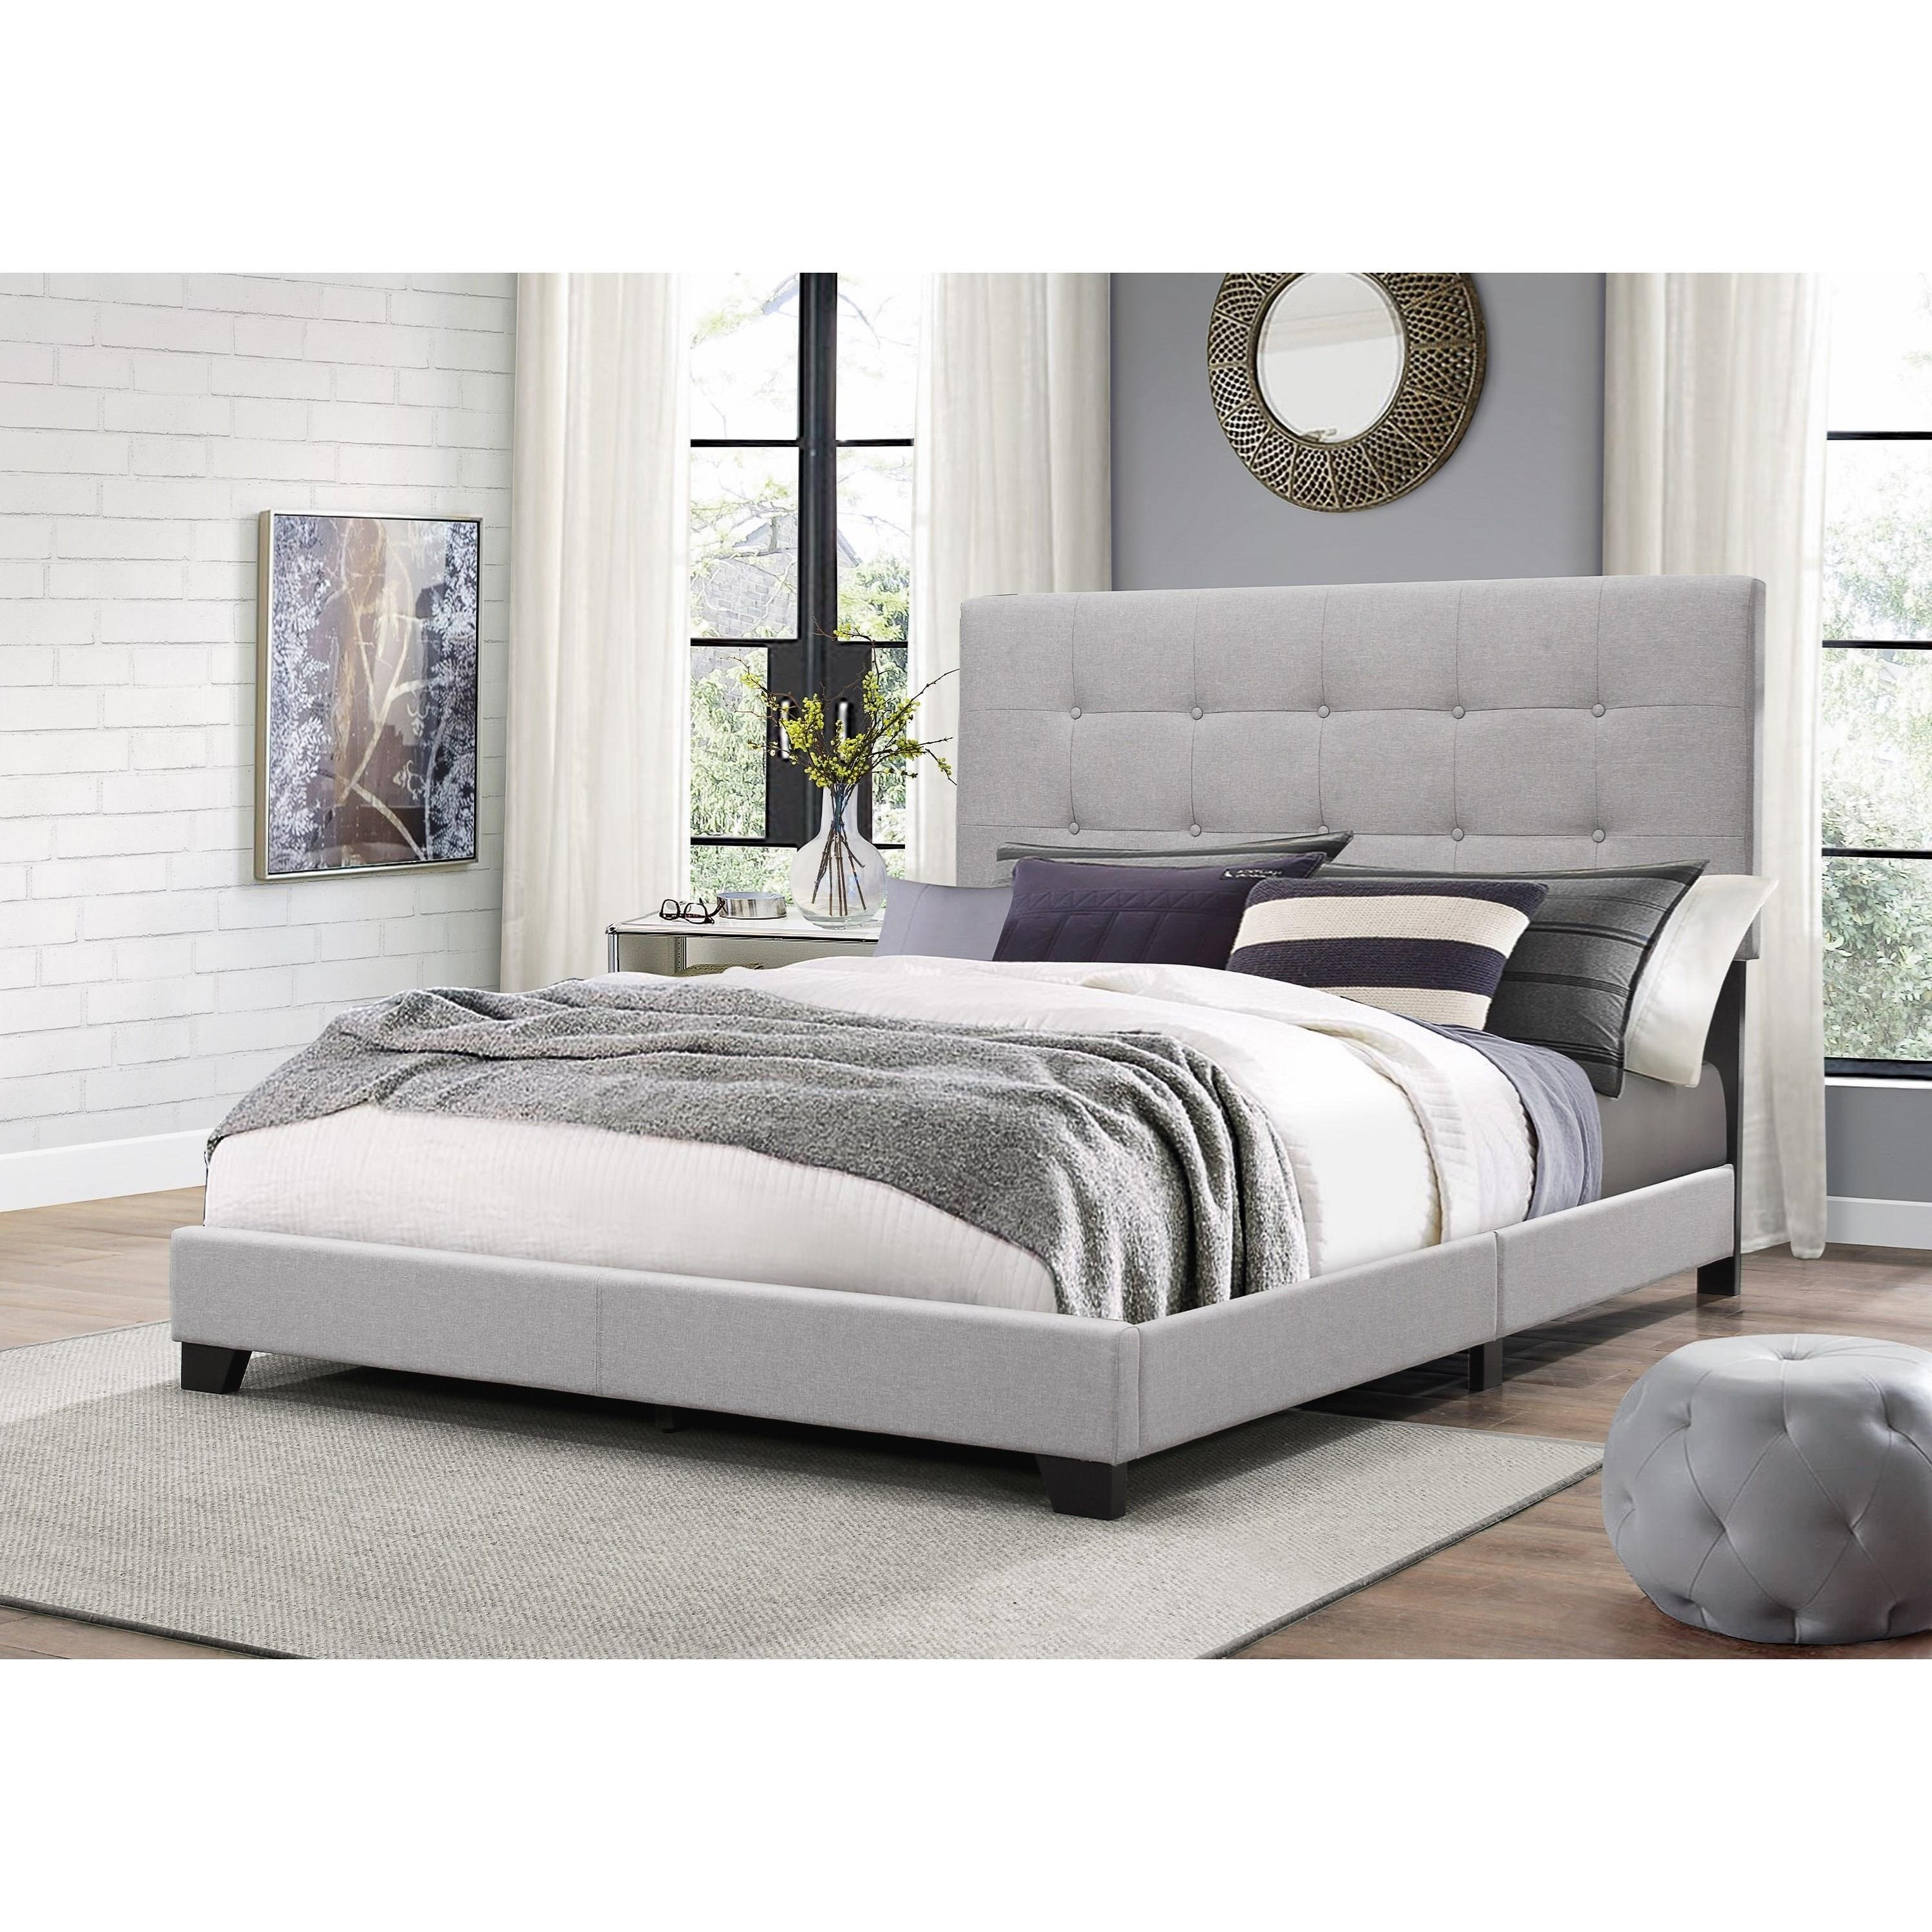 Crown Mark Florence Queen Upholstered Bed With Button Tufting Royal Furniture Upholstered Beds